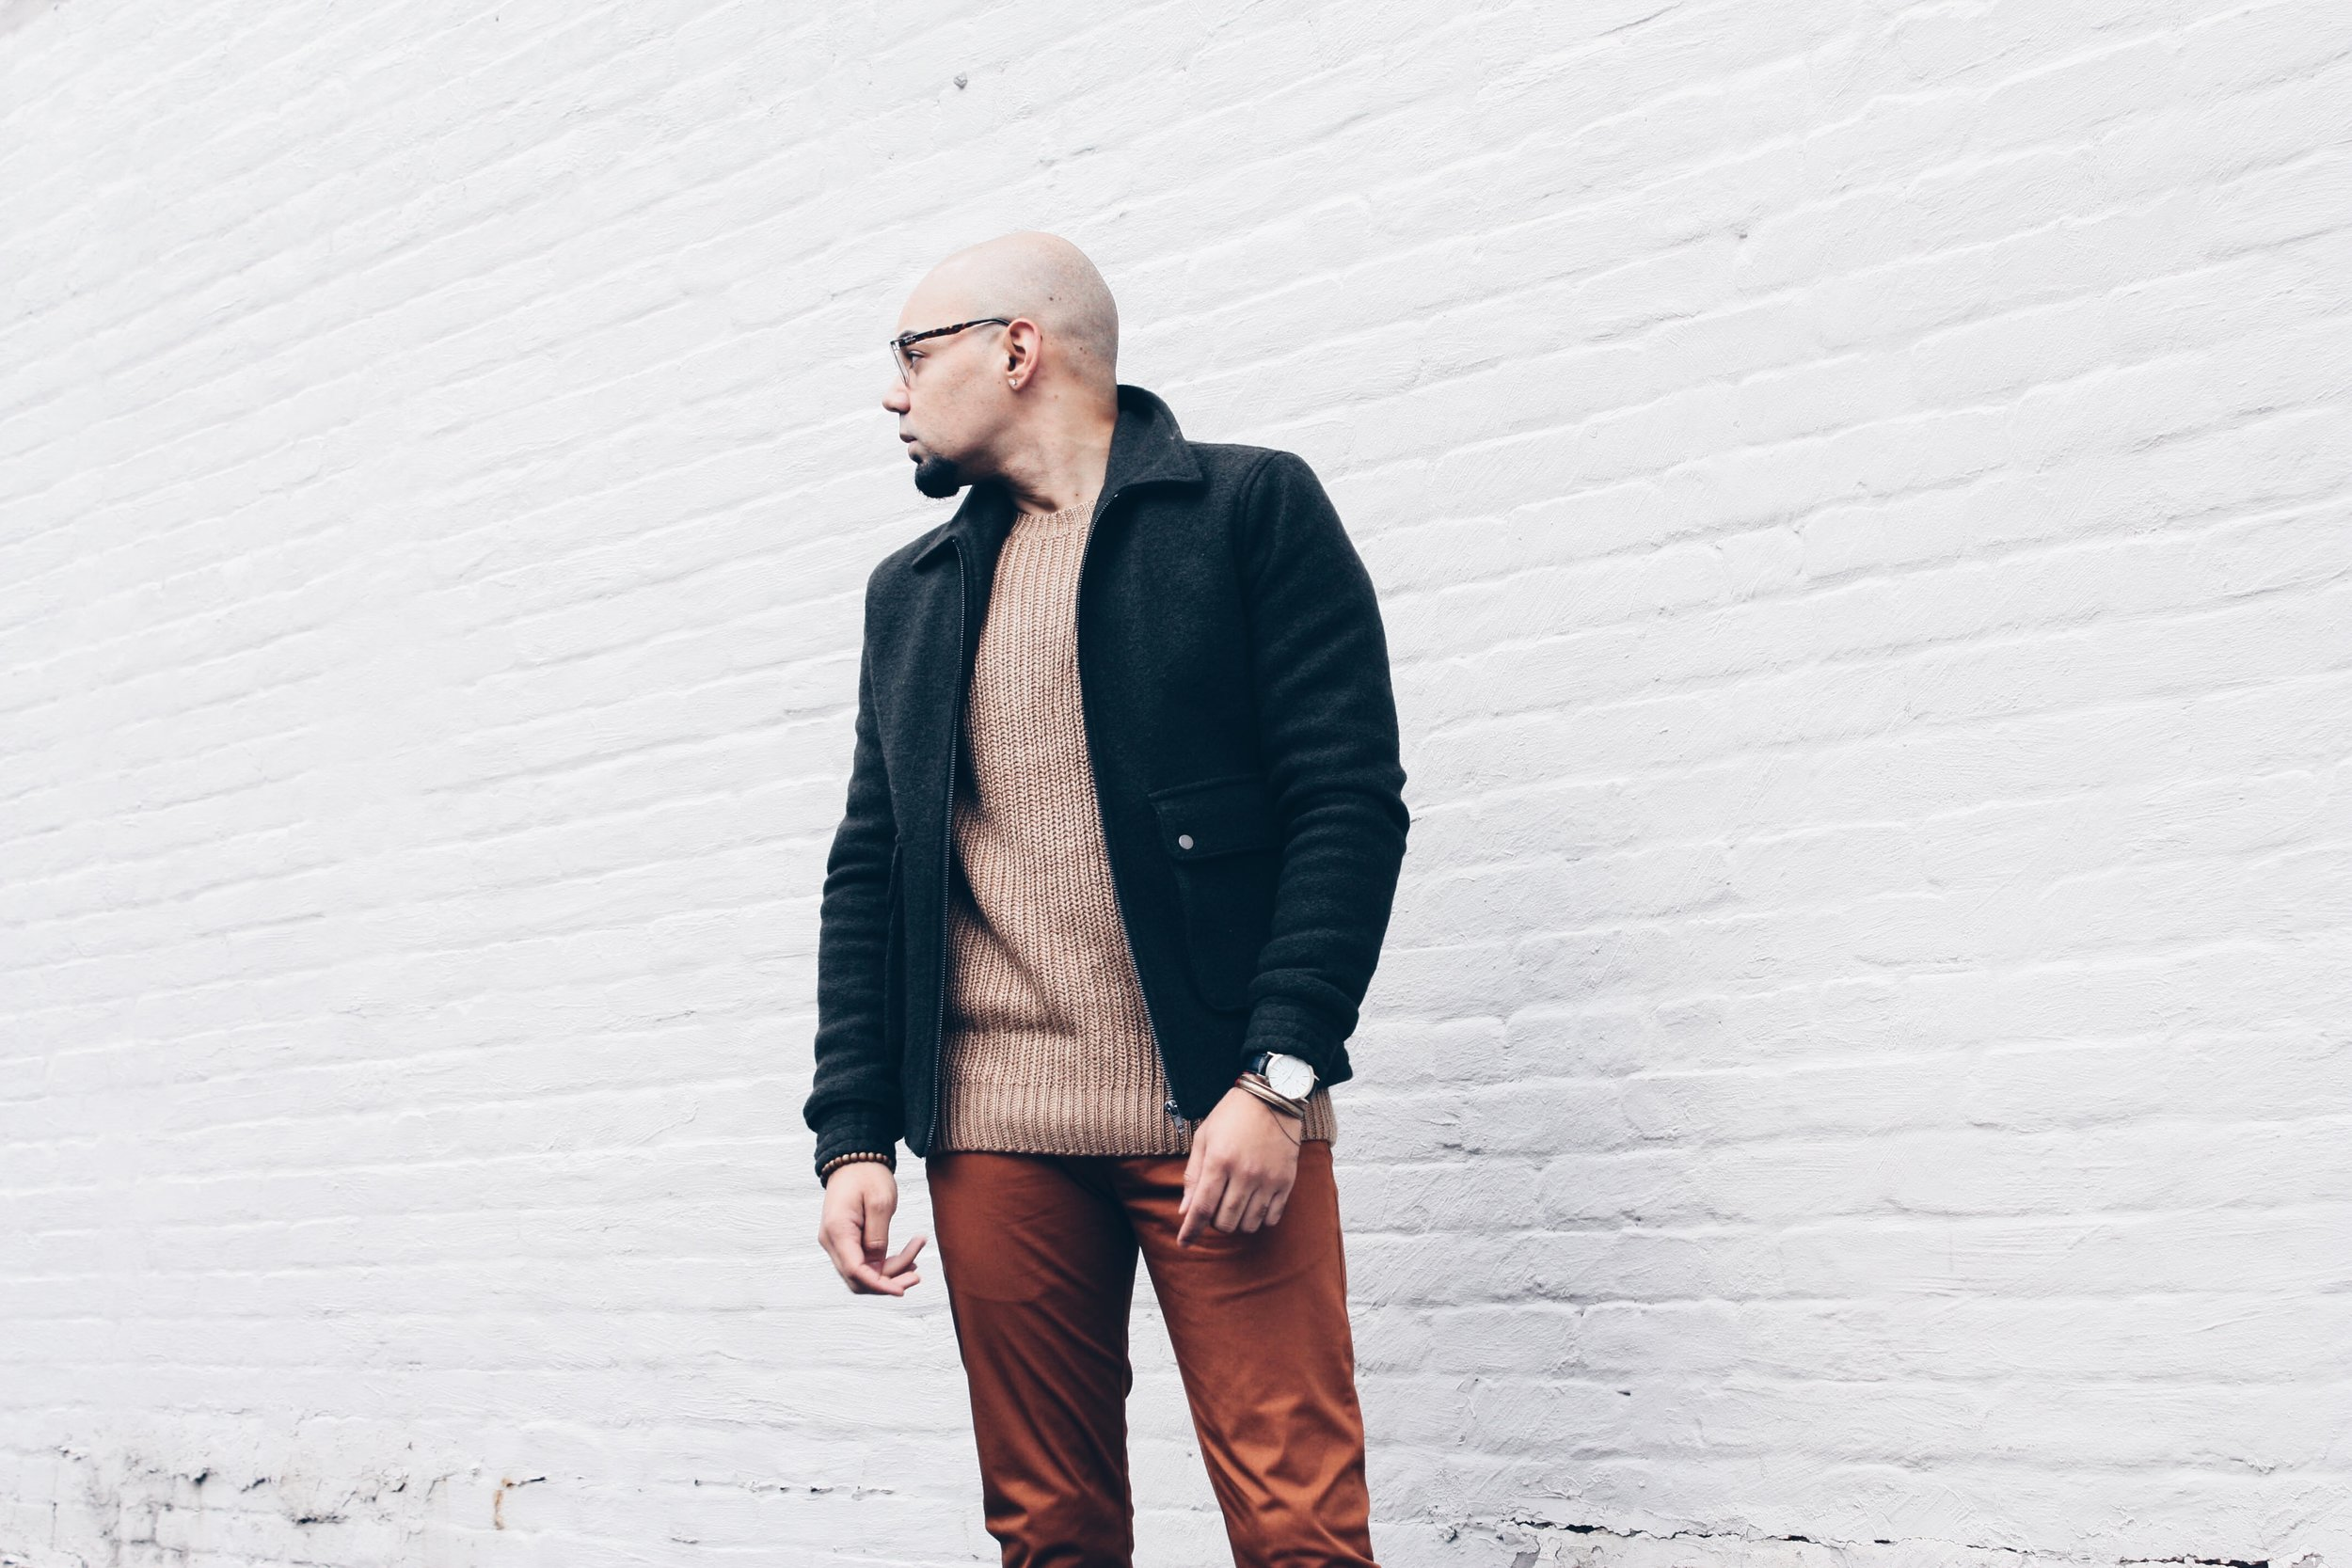 sam-c-perry-chunky-ribbed-knit-sweater-slim-chinos-side.jpg